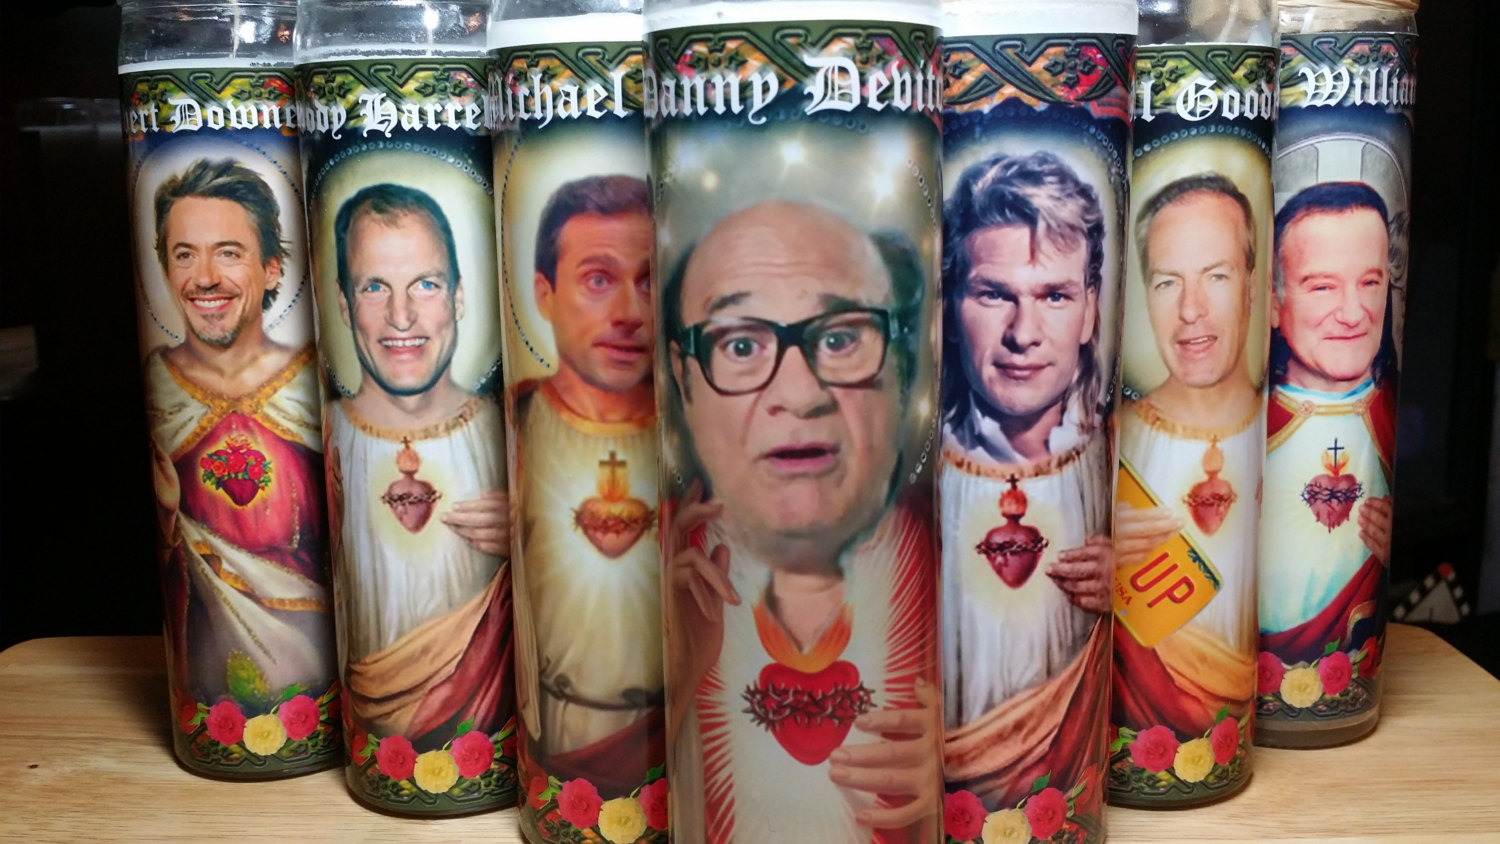 Danny Devito Candle 8 Quot Celebrity Tribute Prayer Candle